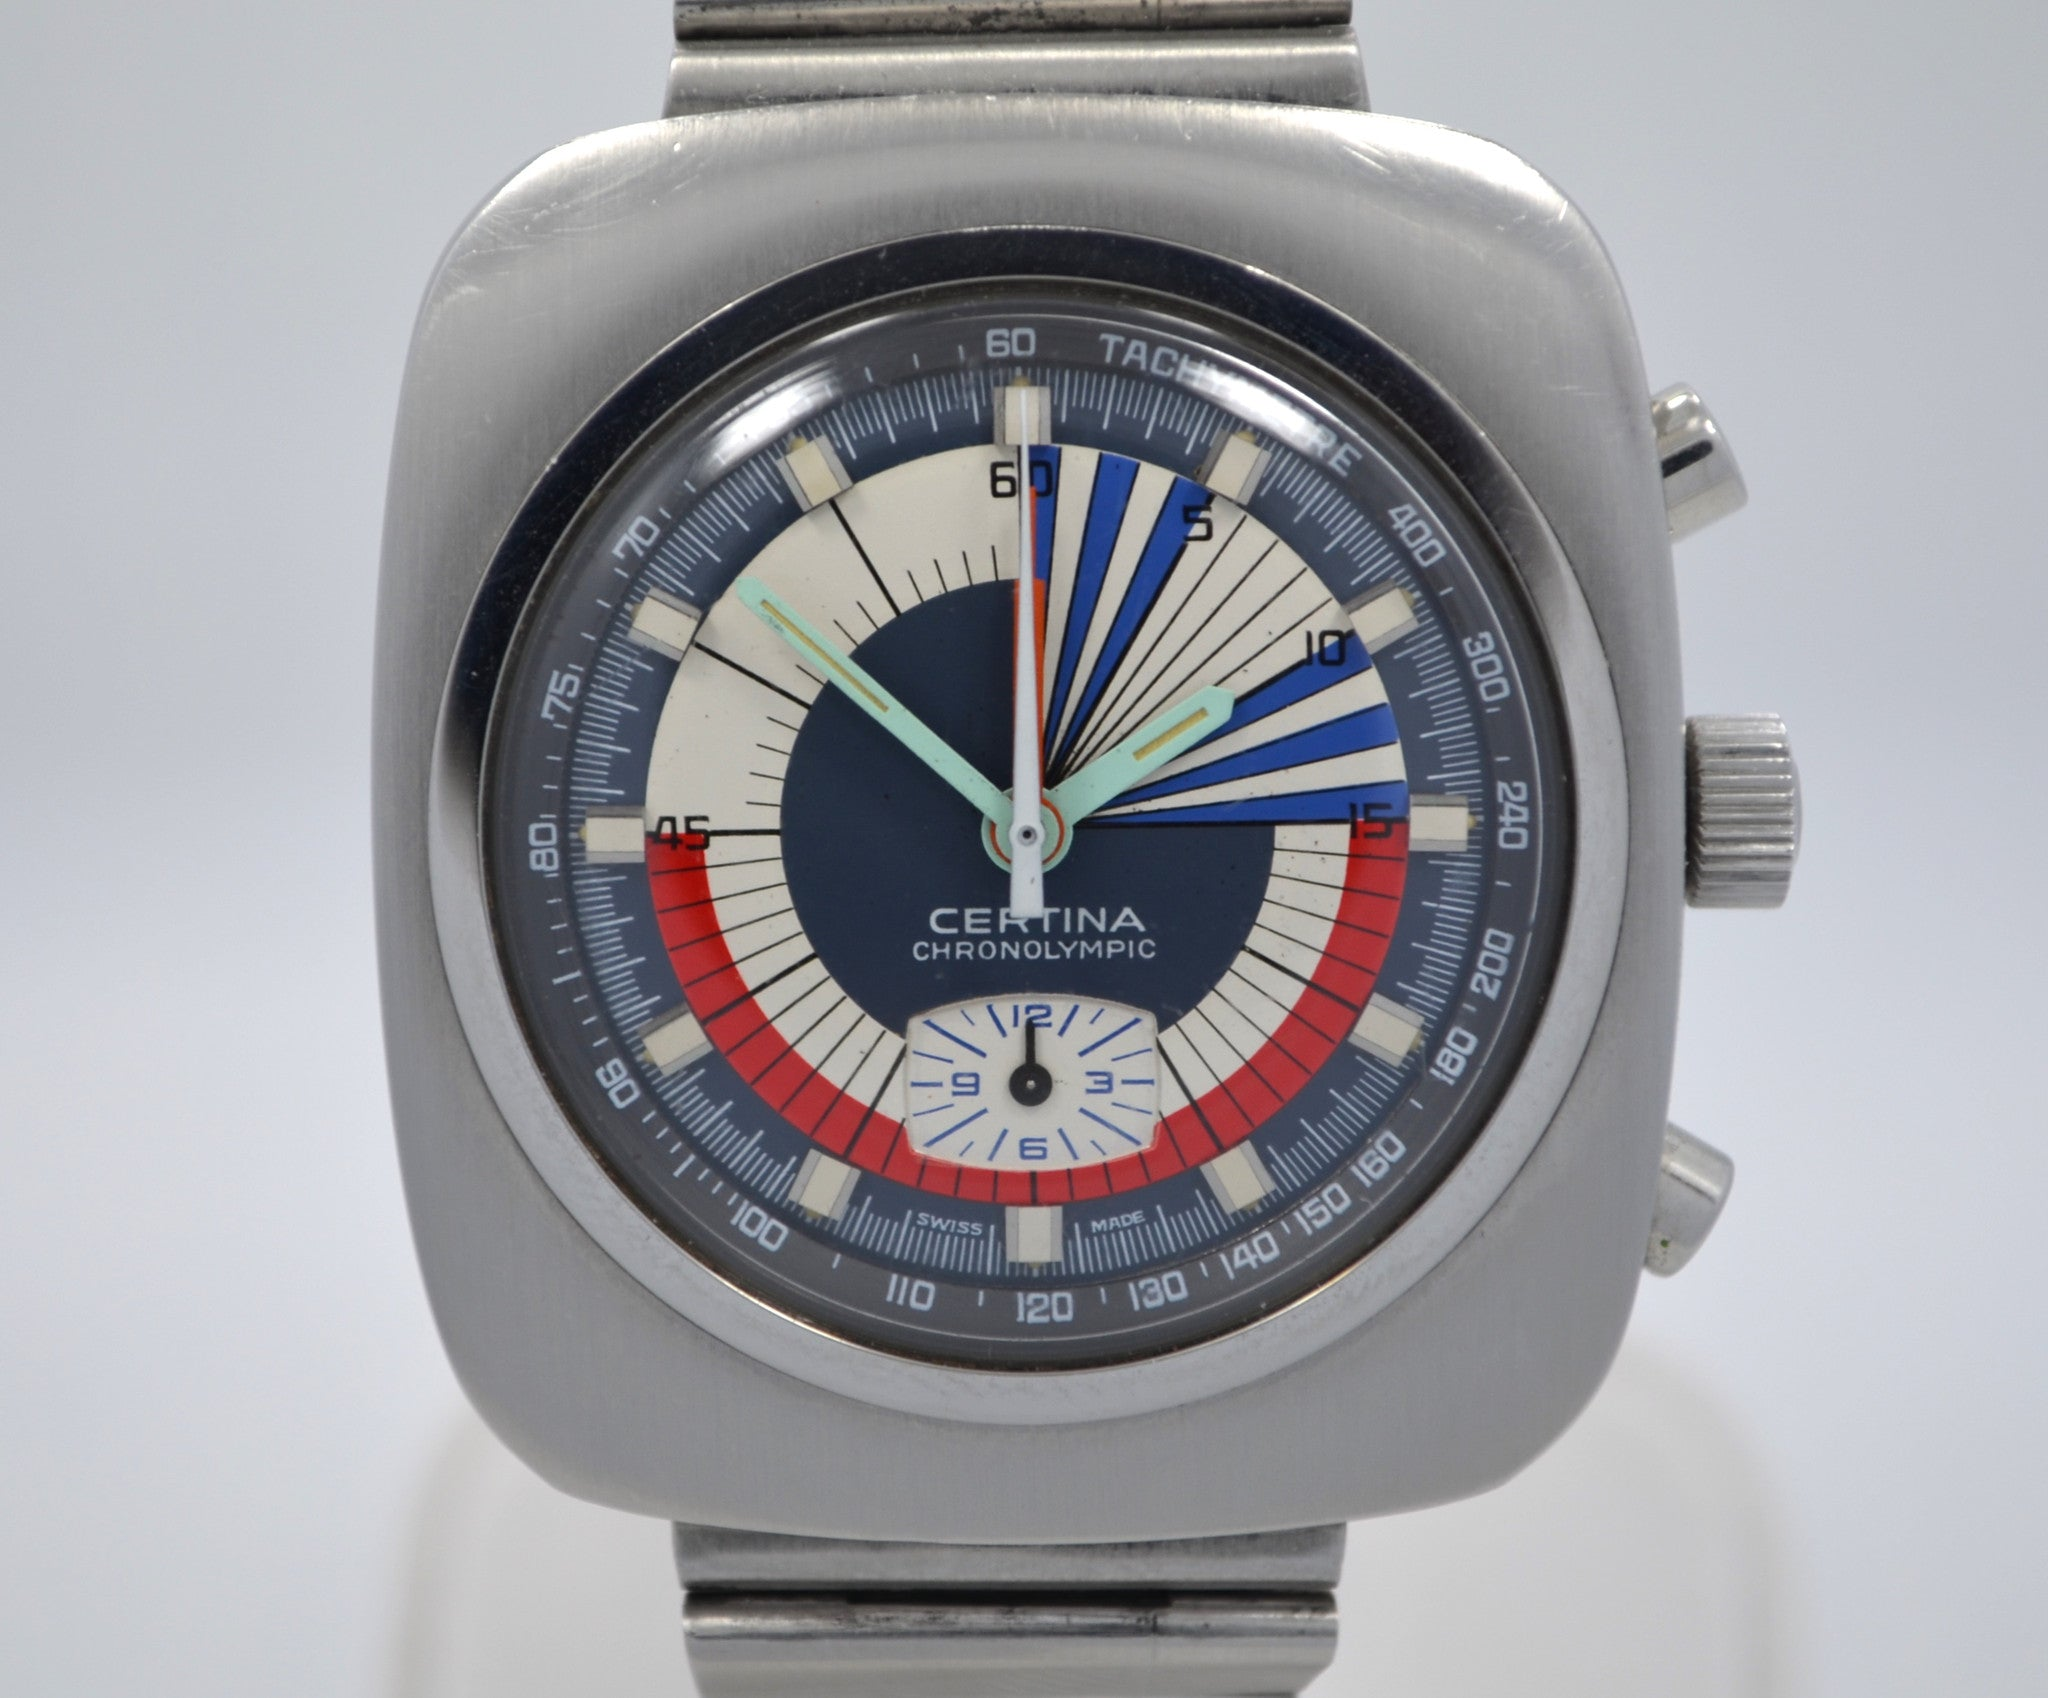 Vintage Certina Chronolympic Regatta Valjoux 728 Chronograph Steel Wristwatch